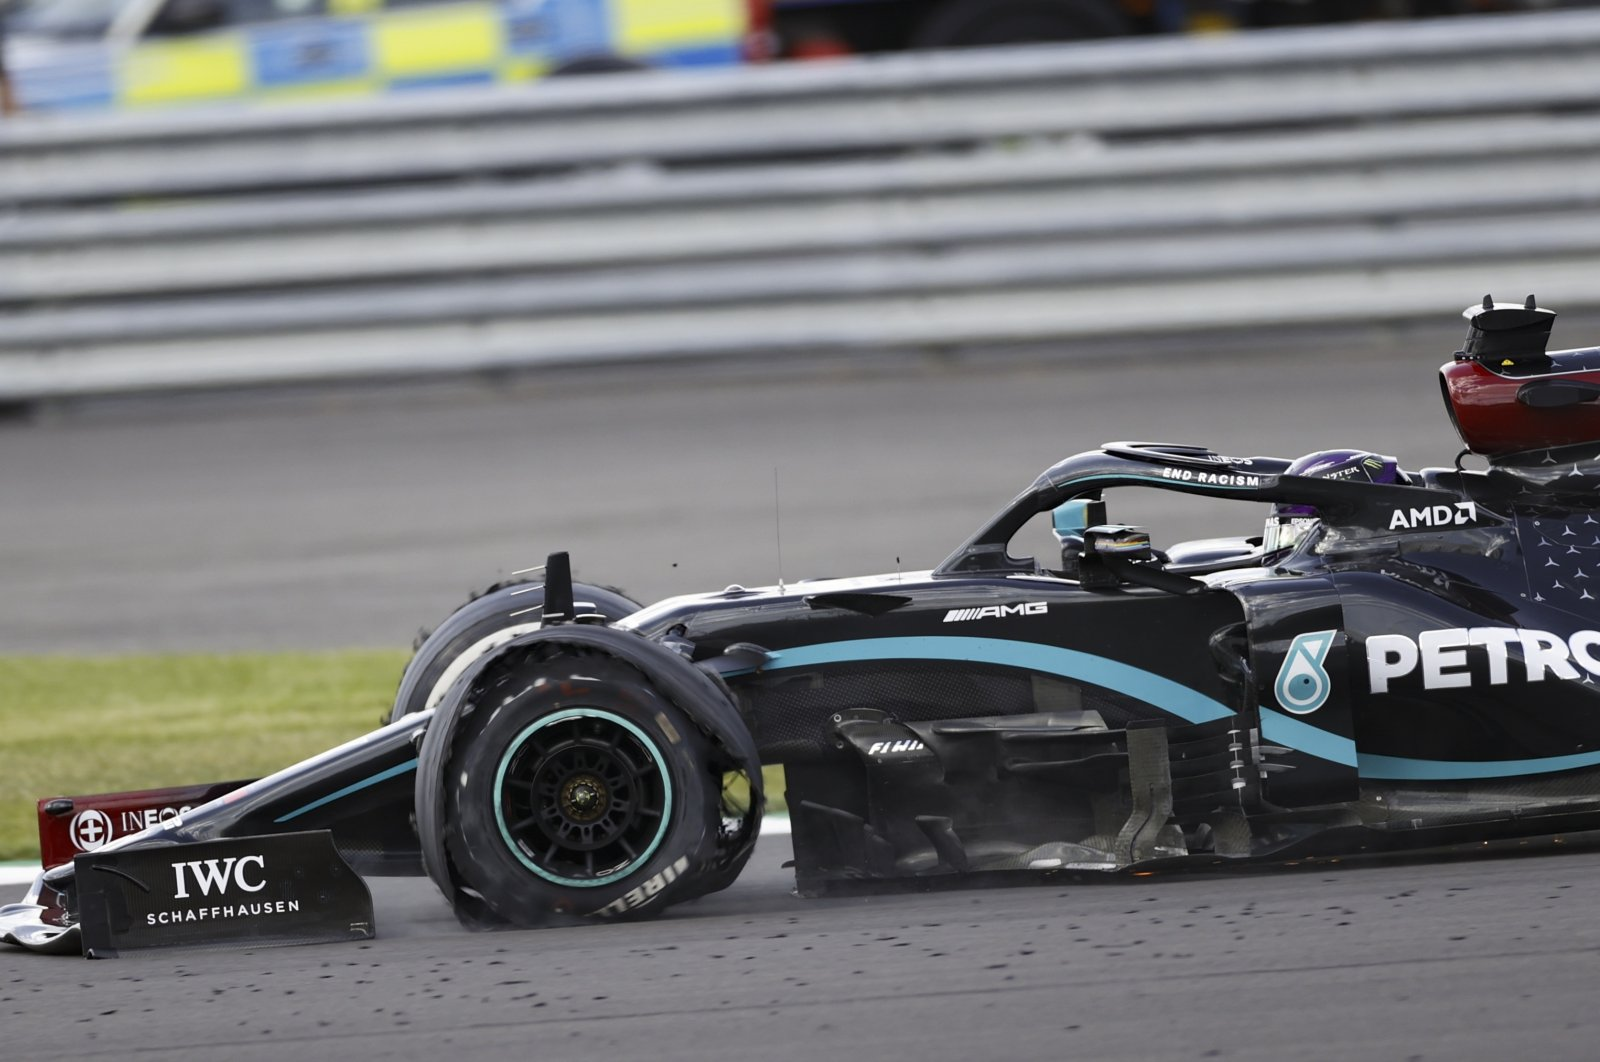 Mercedes driver Lewis Hamilton seen with a flat tire during the final lap of Formula 1 British Grand Prix race in Northamptonshire, Britain, Aug. 2, 2020. (EPA Photo)